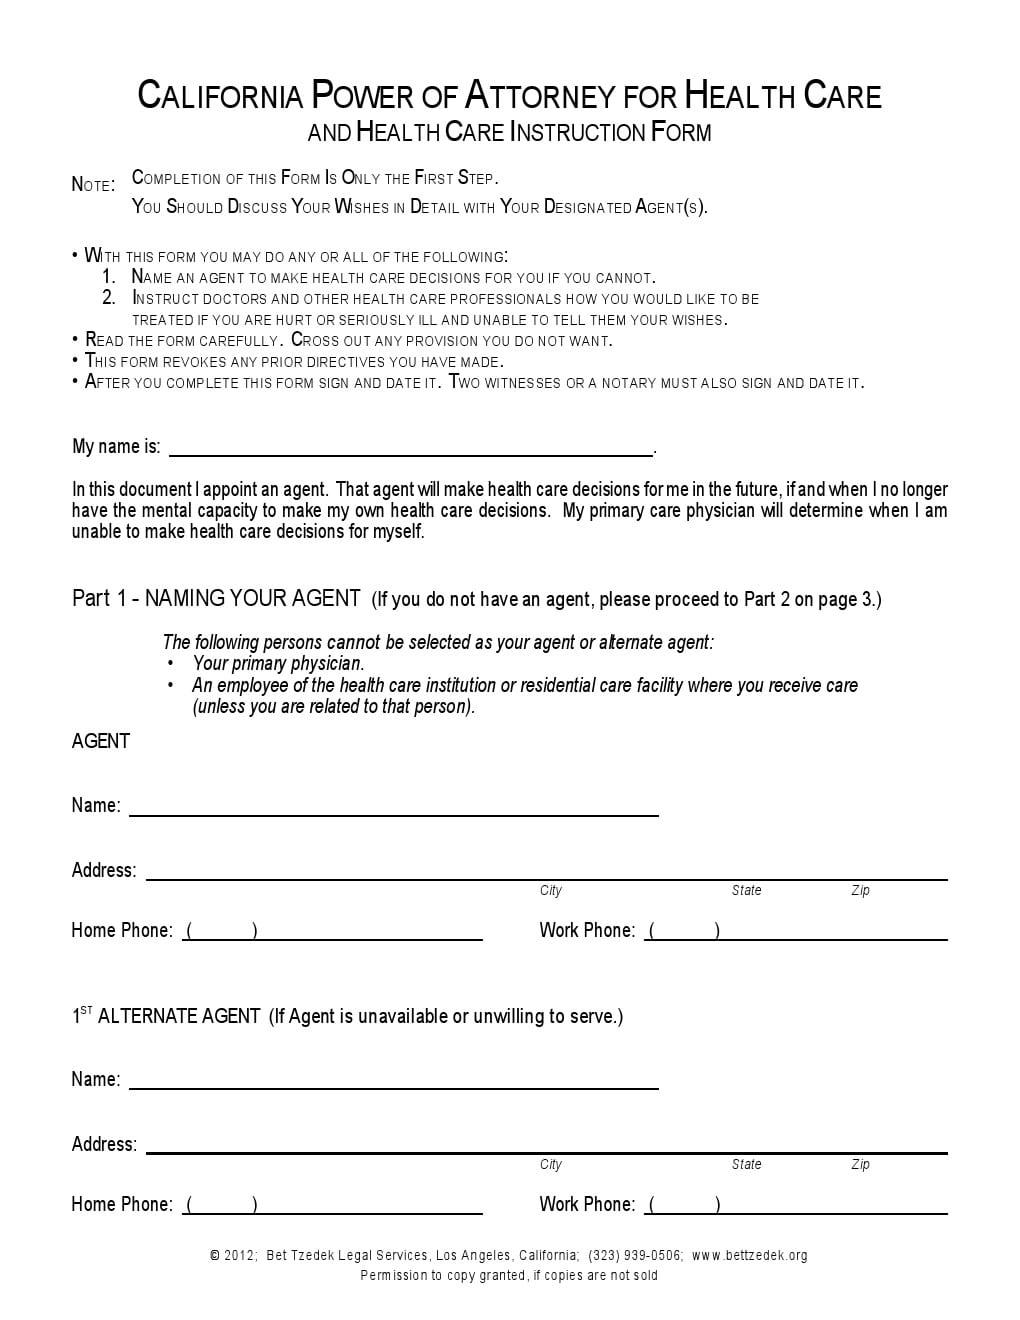 Free california durable power of attorney for health care form free california durable power of attorney for health care form adobe pdf word solutioingenieria